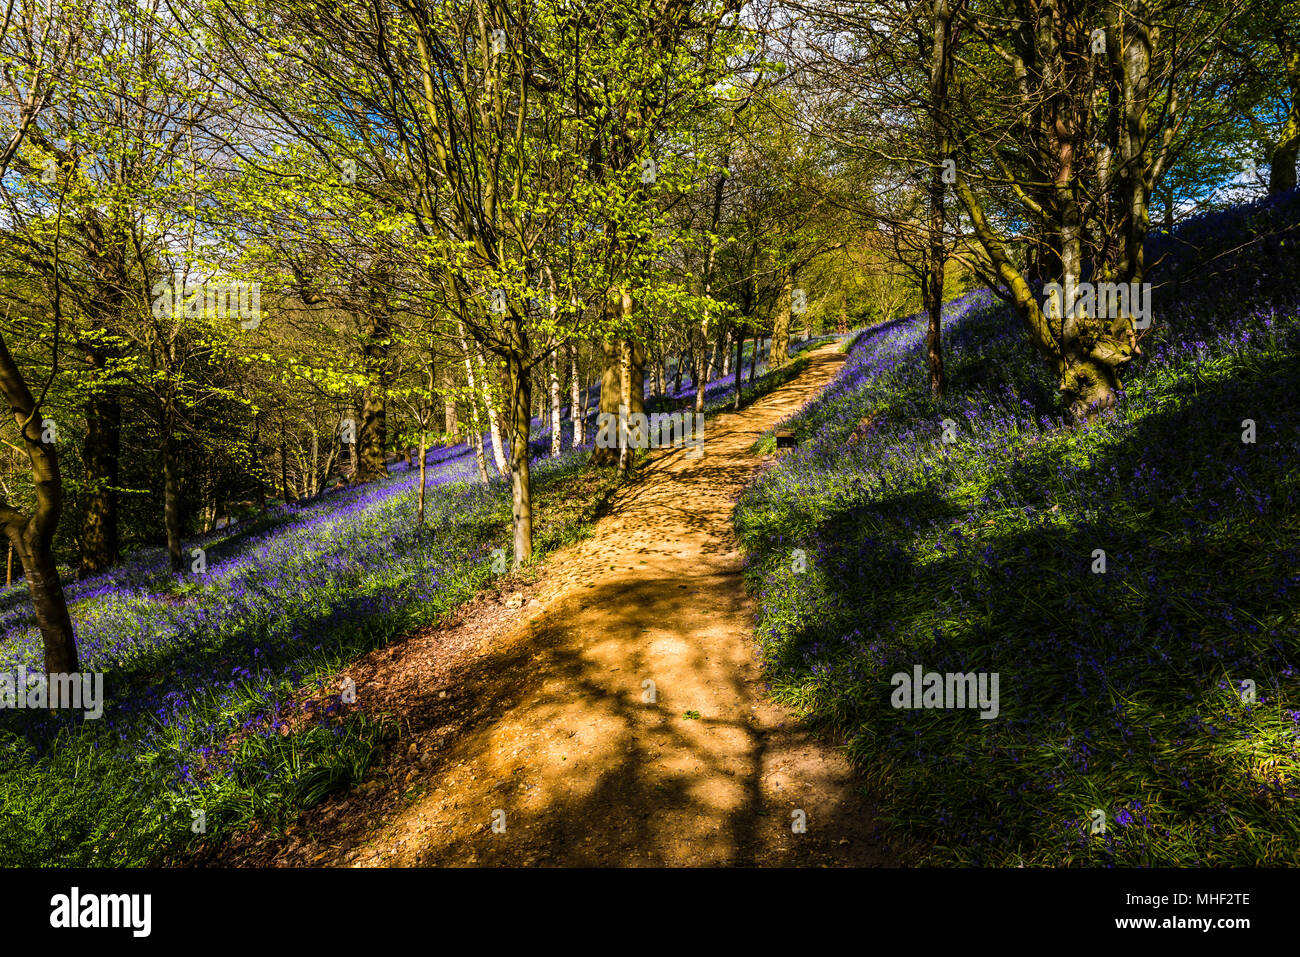 Path through a carpet of woodland Bluebells in the spring sunshine, Emmetts Garden, Kent, UK - Stock Image